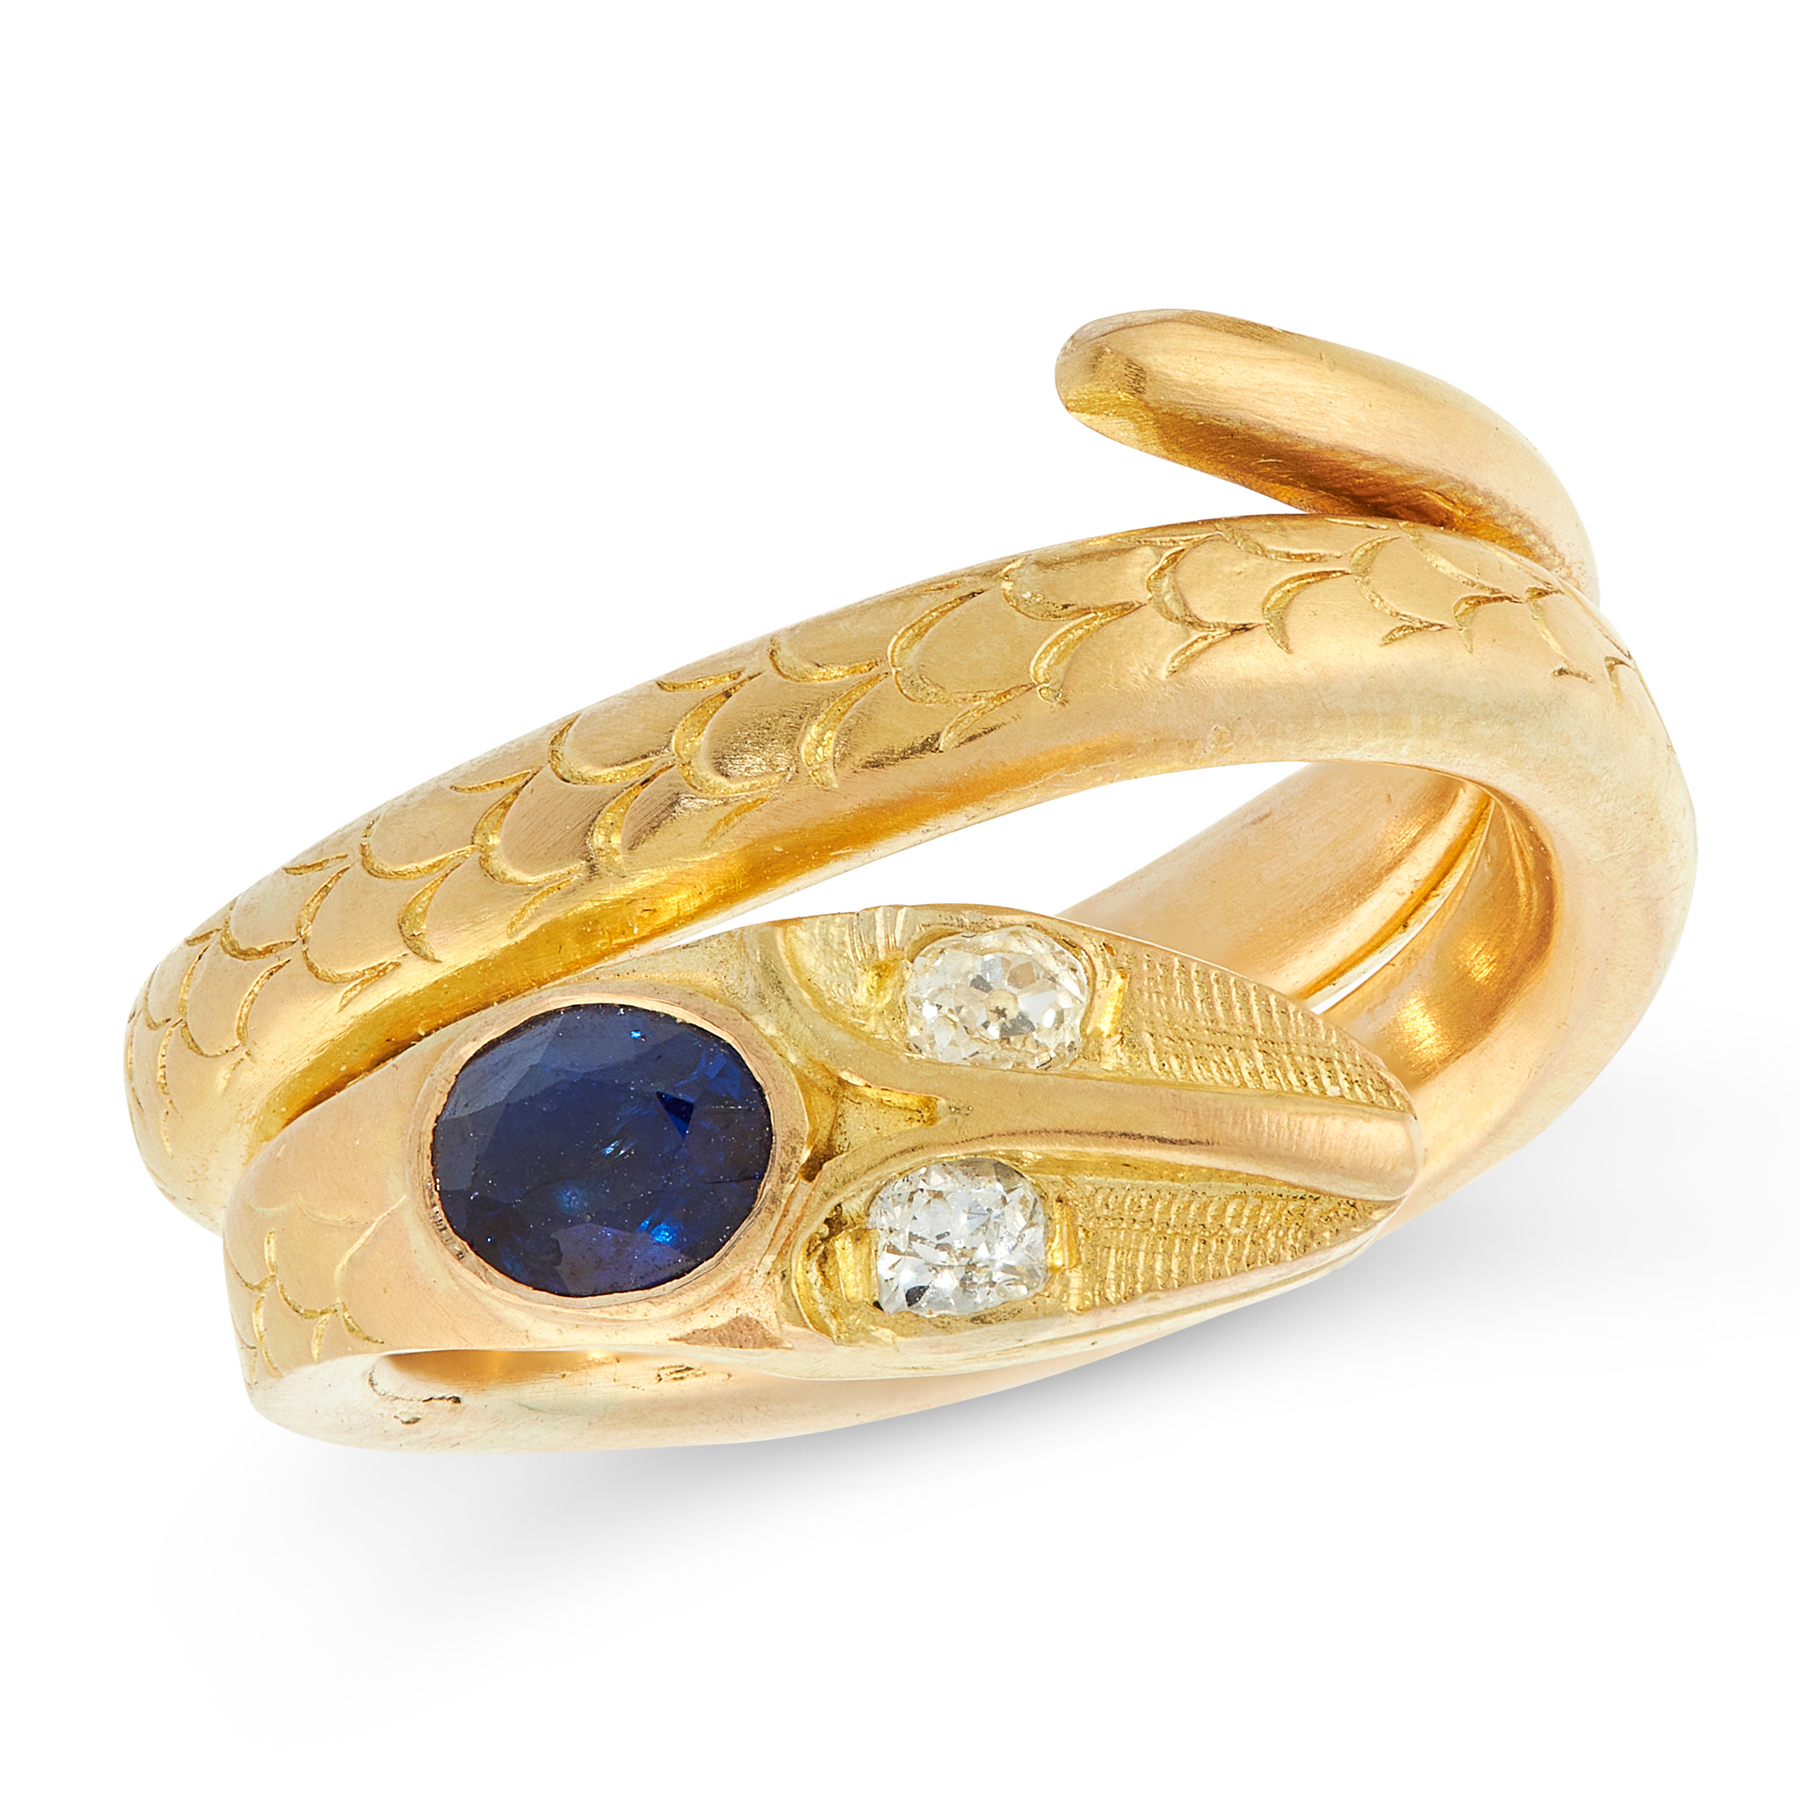 A SAPPHIRE AND DIAMOND SNAKE RING in high carat yellow gold, designed as a snake coiled around on